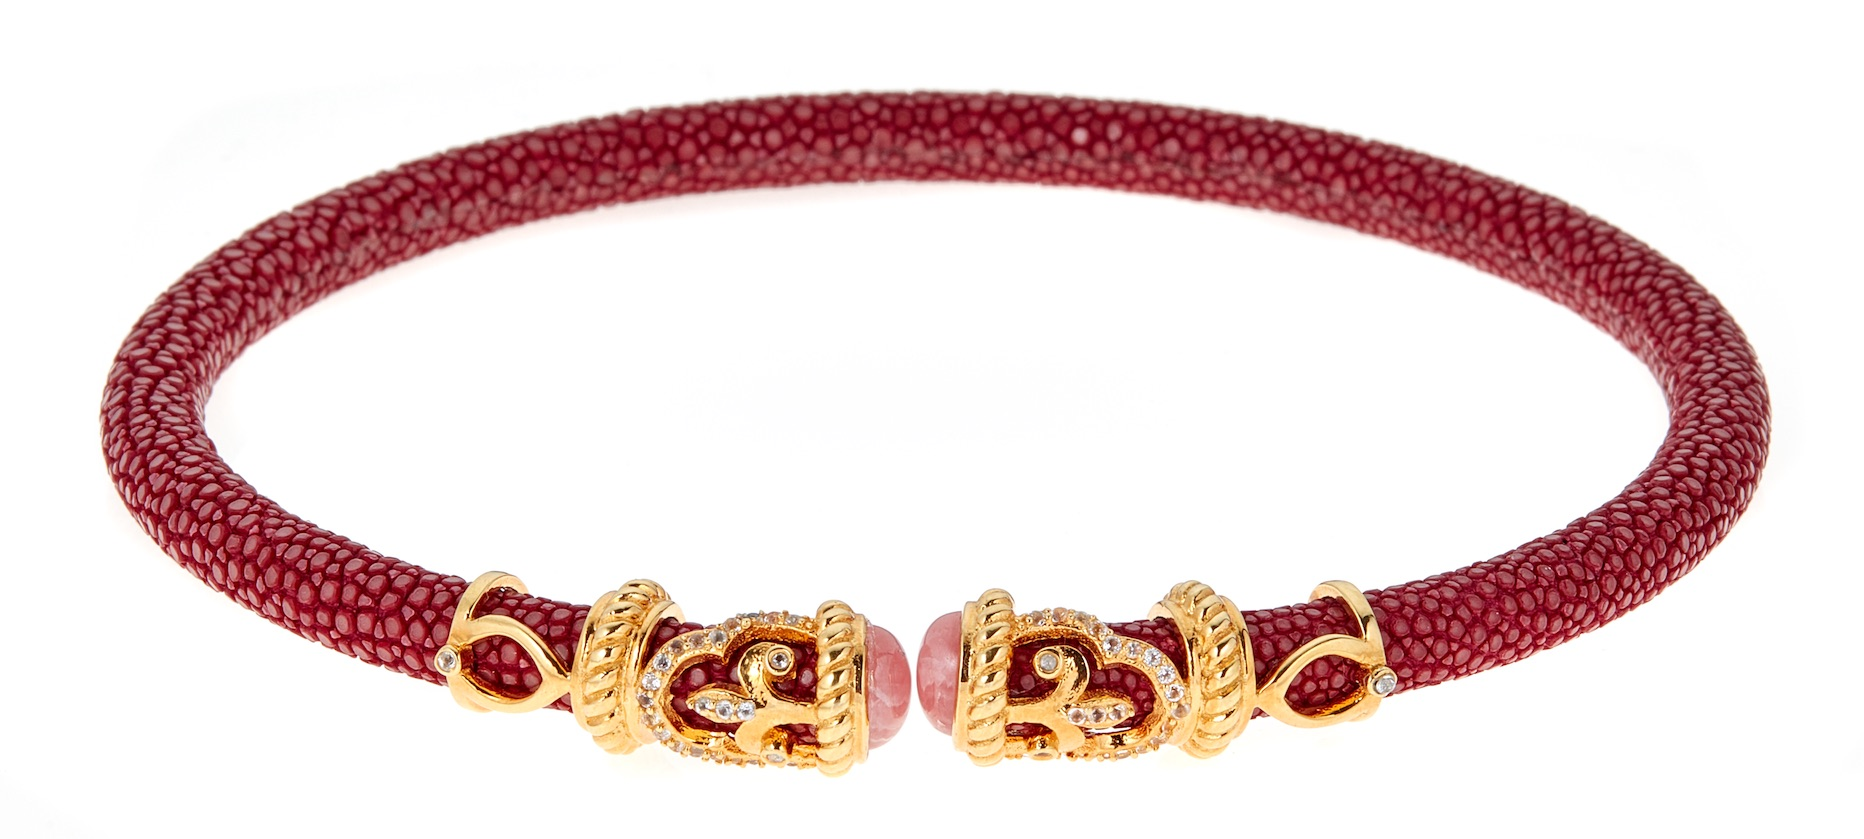 Cristina Sabatini rope scroll choker | JCK On Your Market